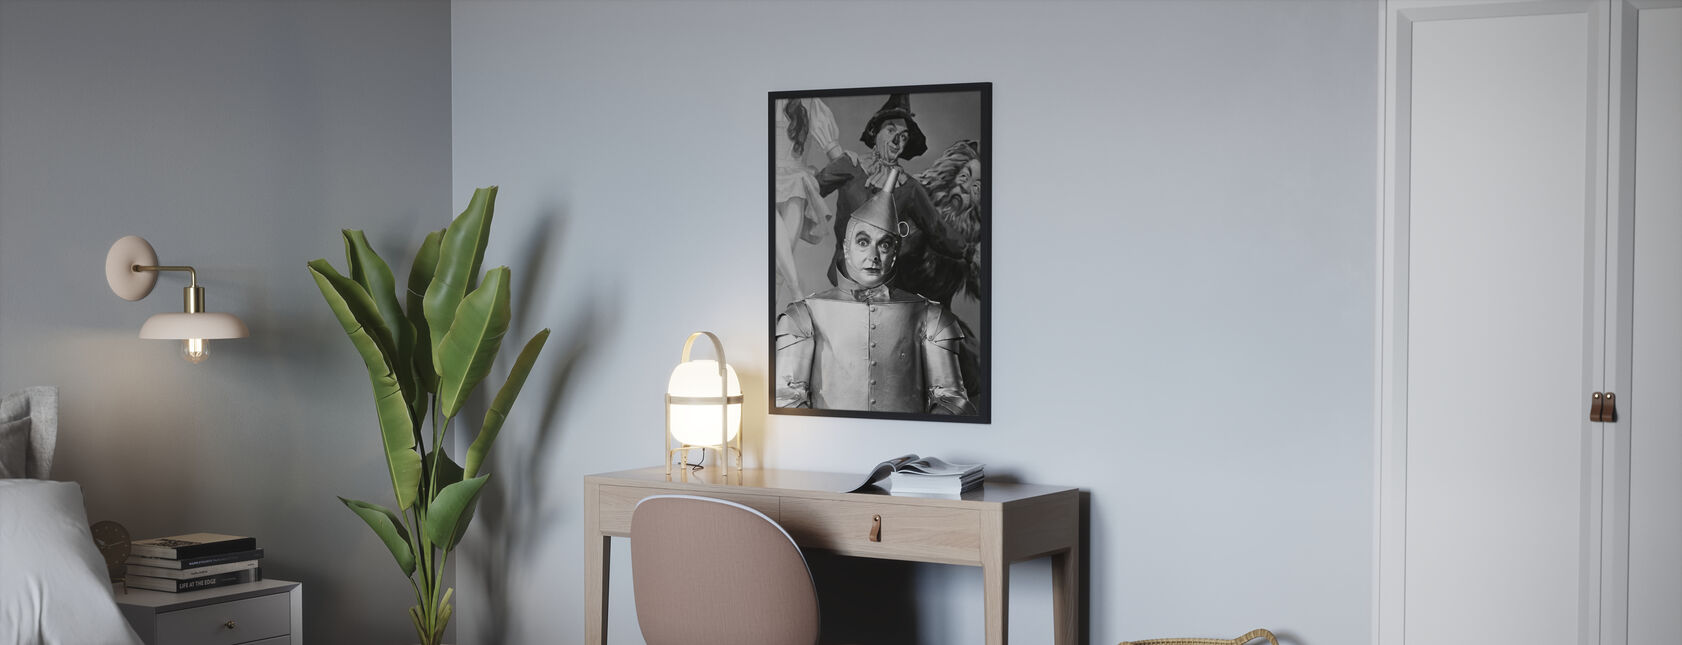 Jack Haley in the Wizard of Oz - Poster - Bedroom